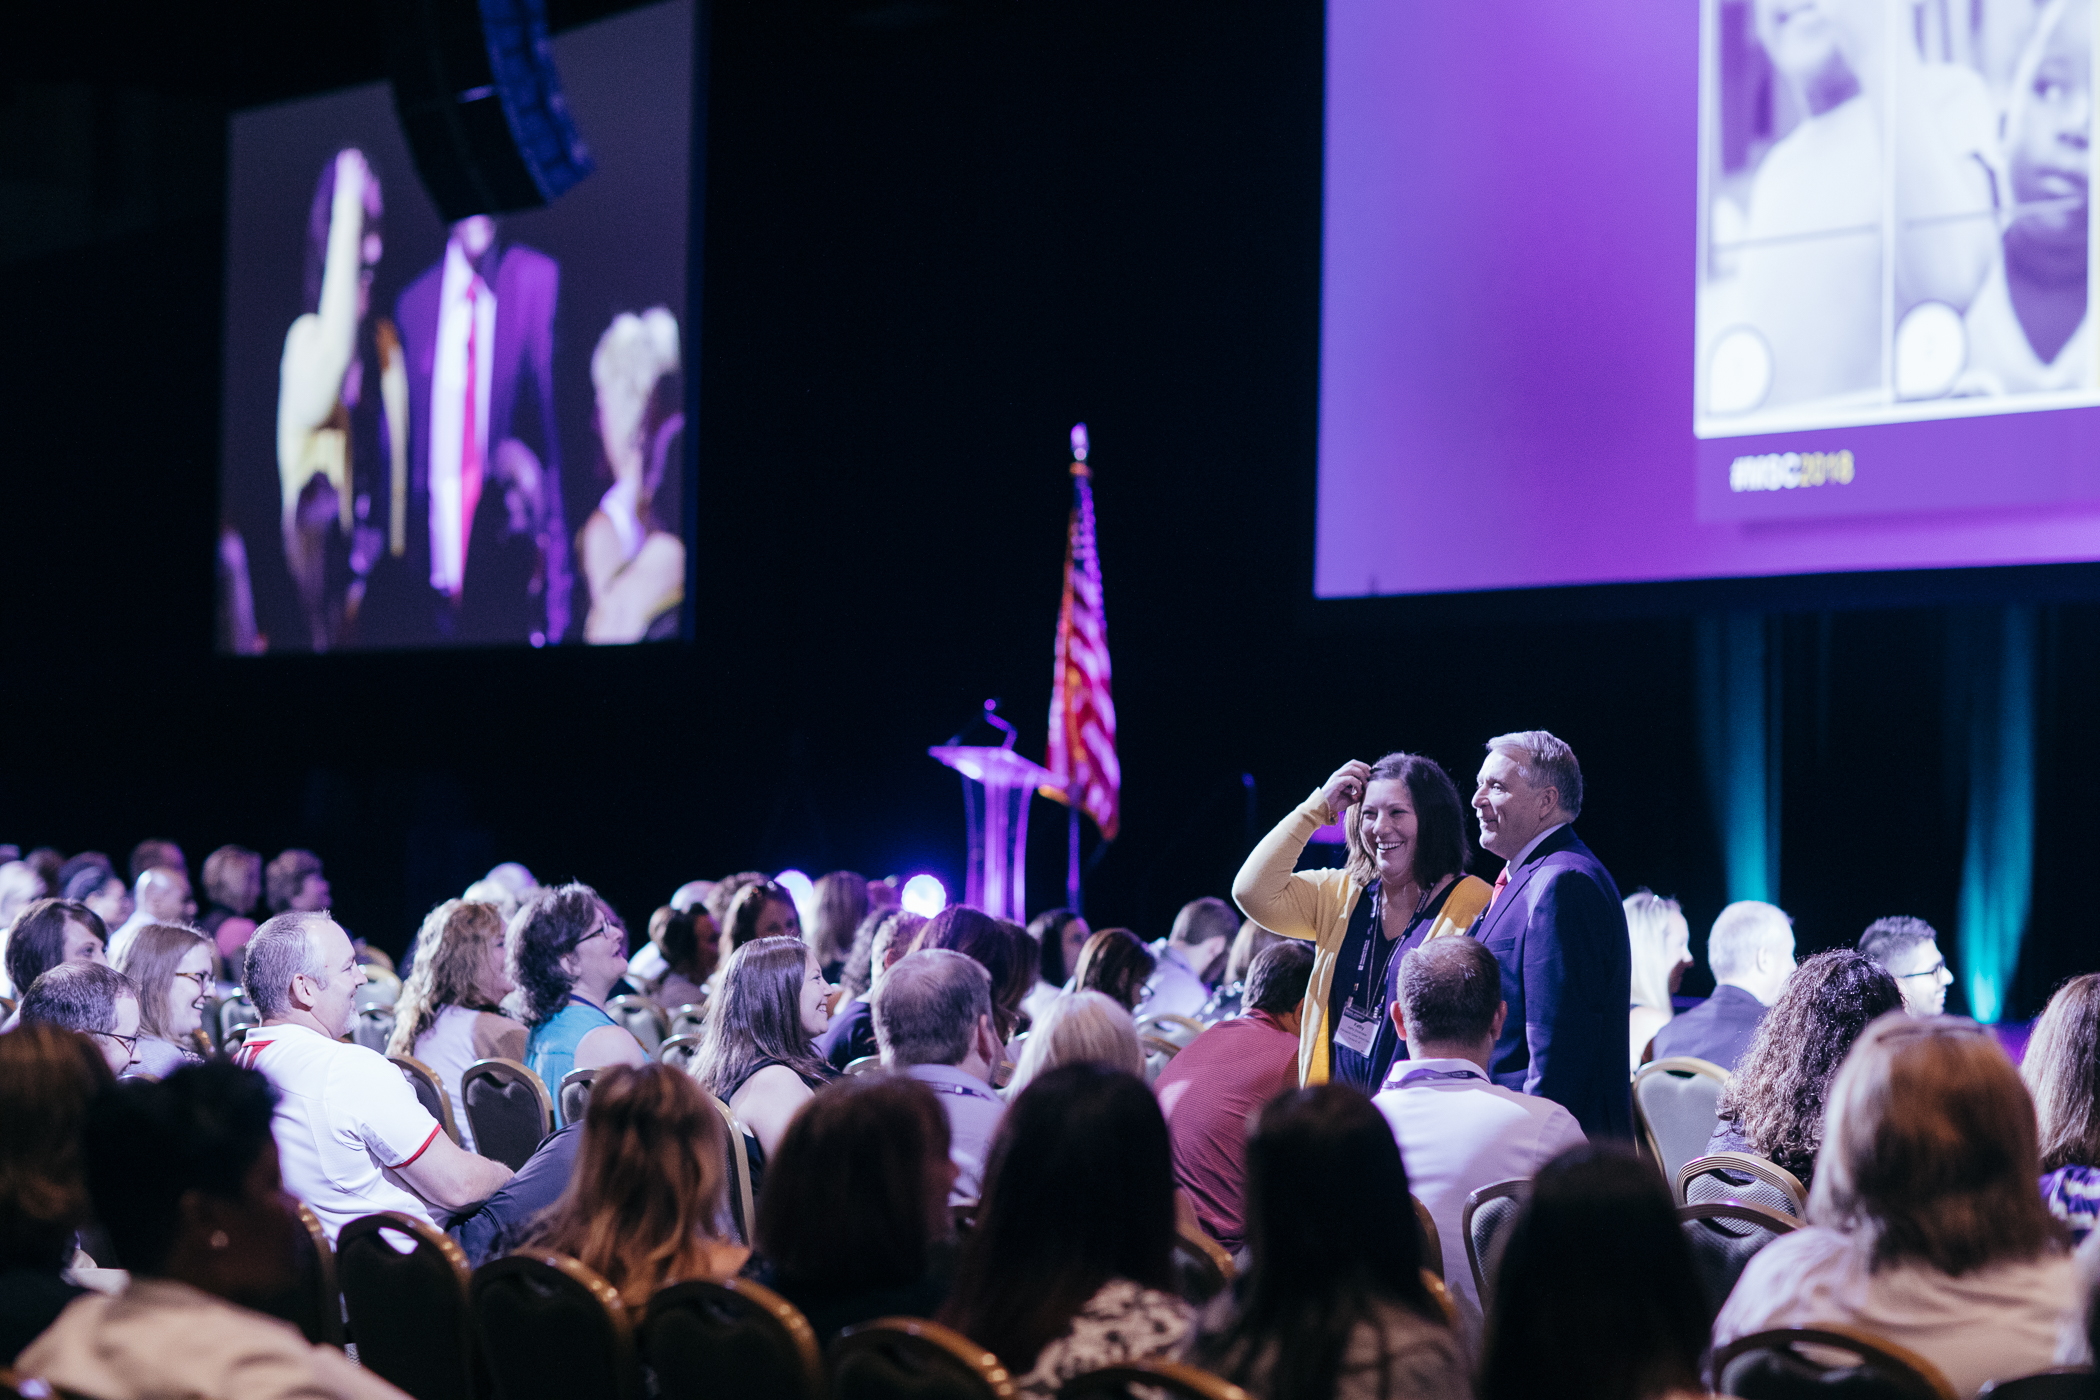 live event commercial photography brand storytelling for education florida conference photographer ©2018abigailbobophotography-33.jpg